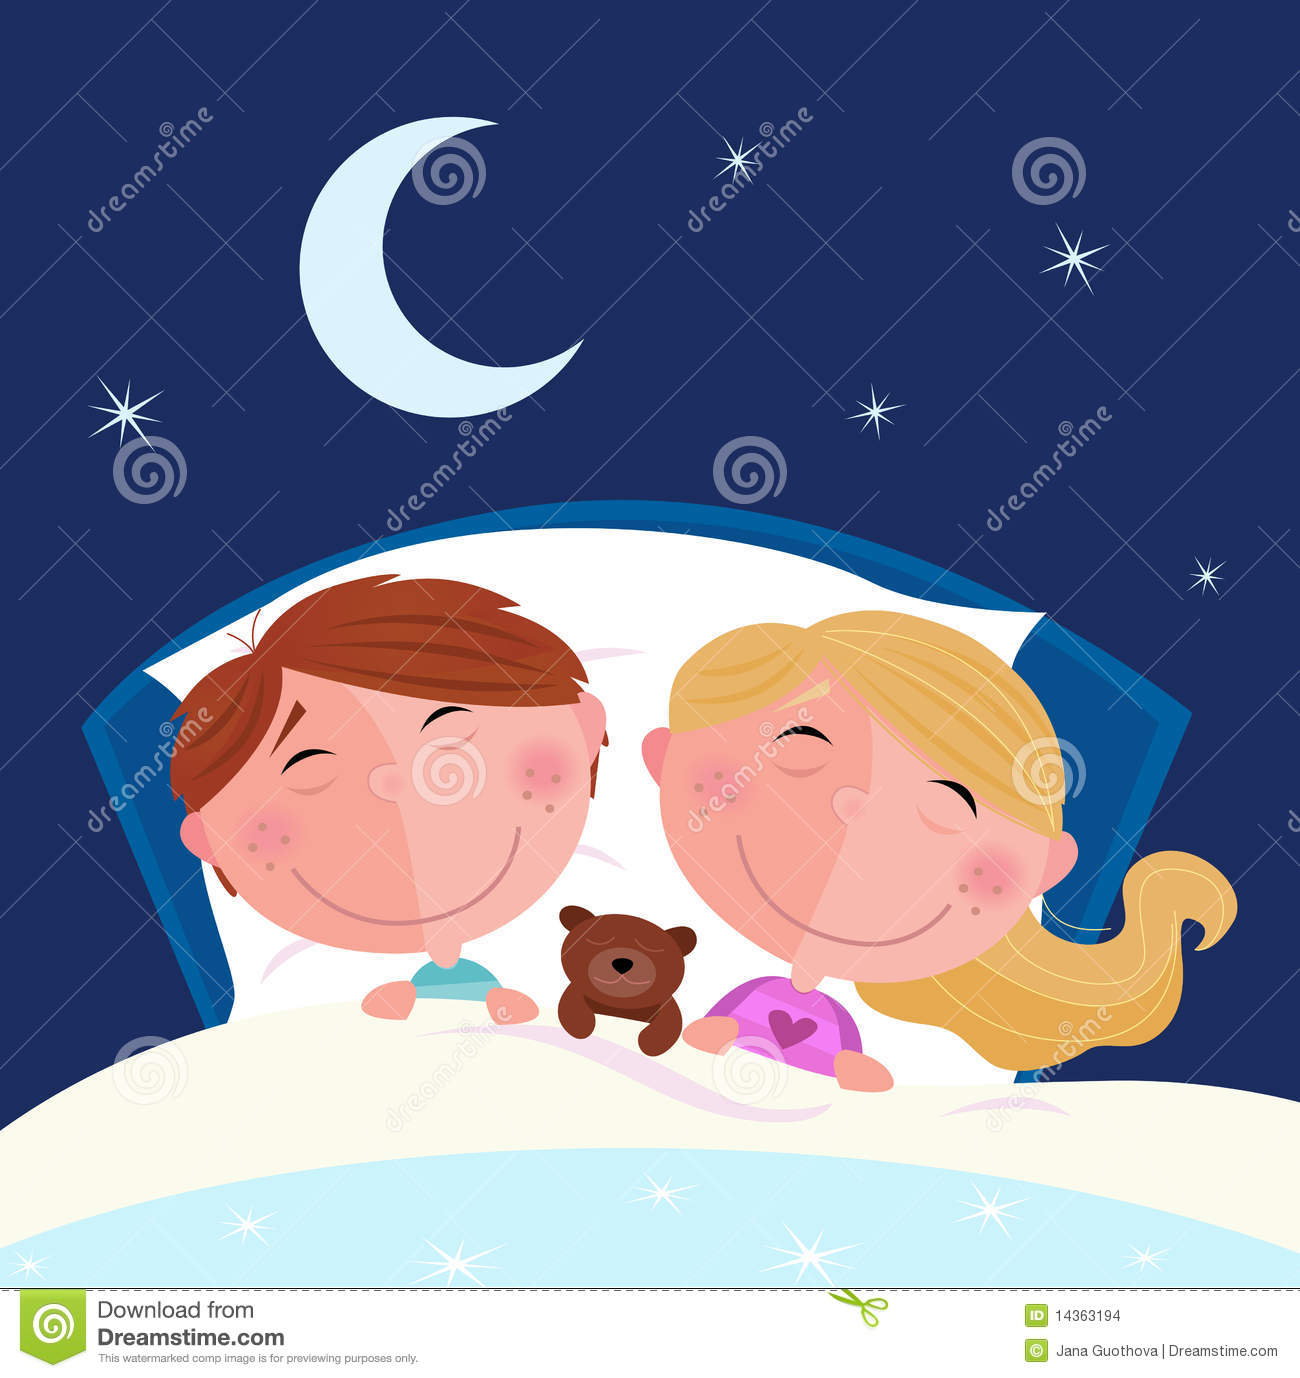 Siblings - boy and girl sleeping in bed